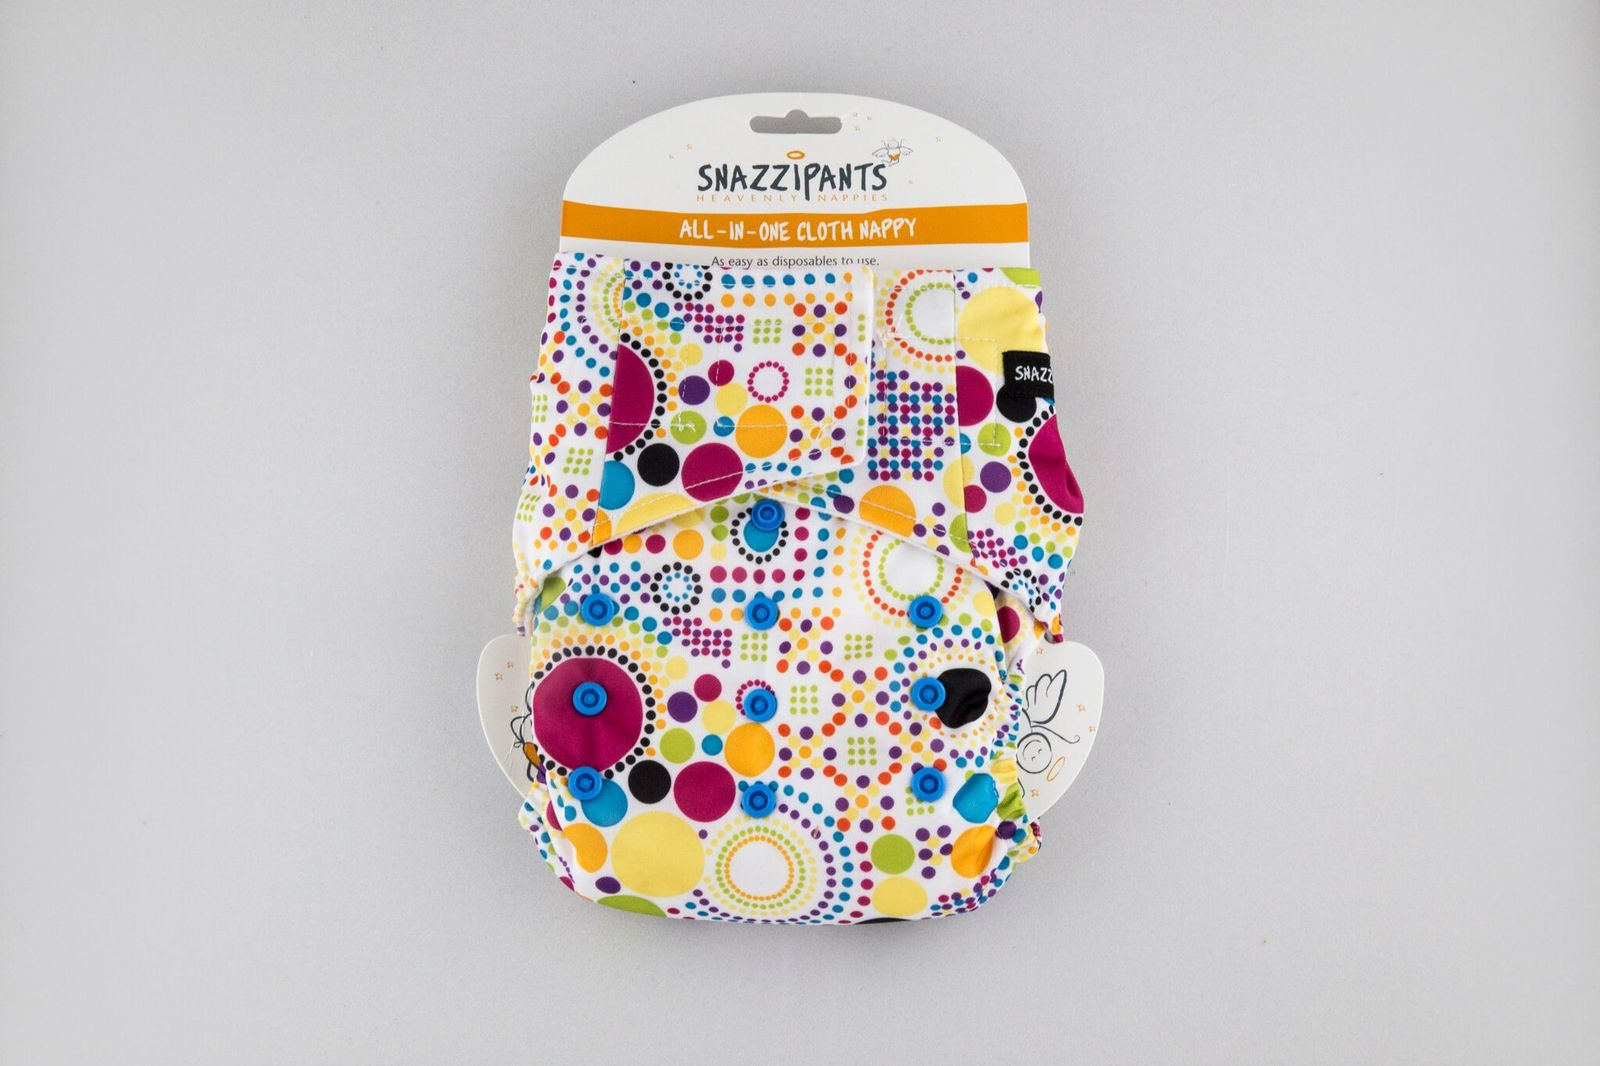 Snazzipants: All in One Reusable Nappy - Multi-circle image